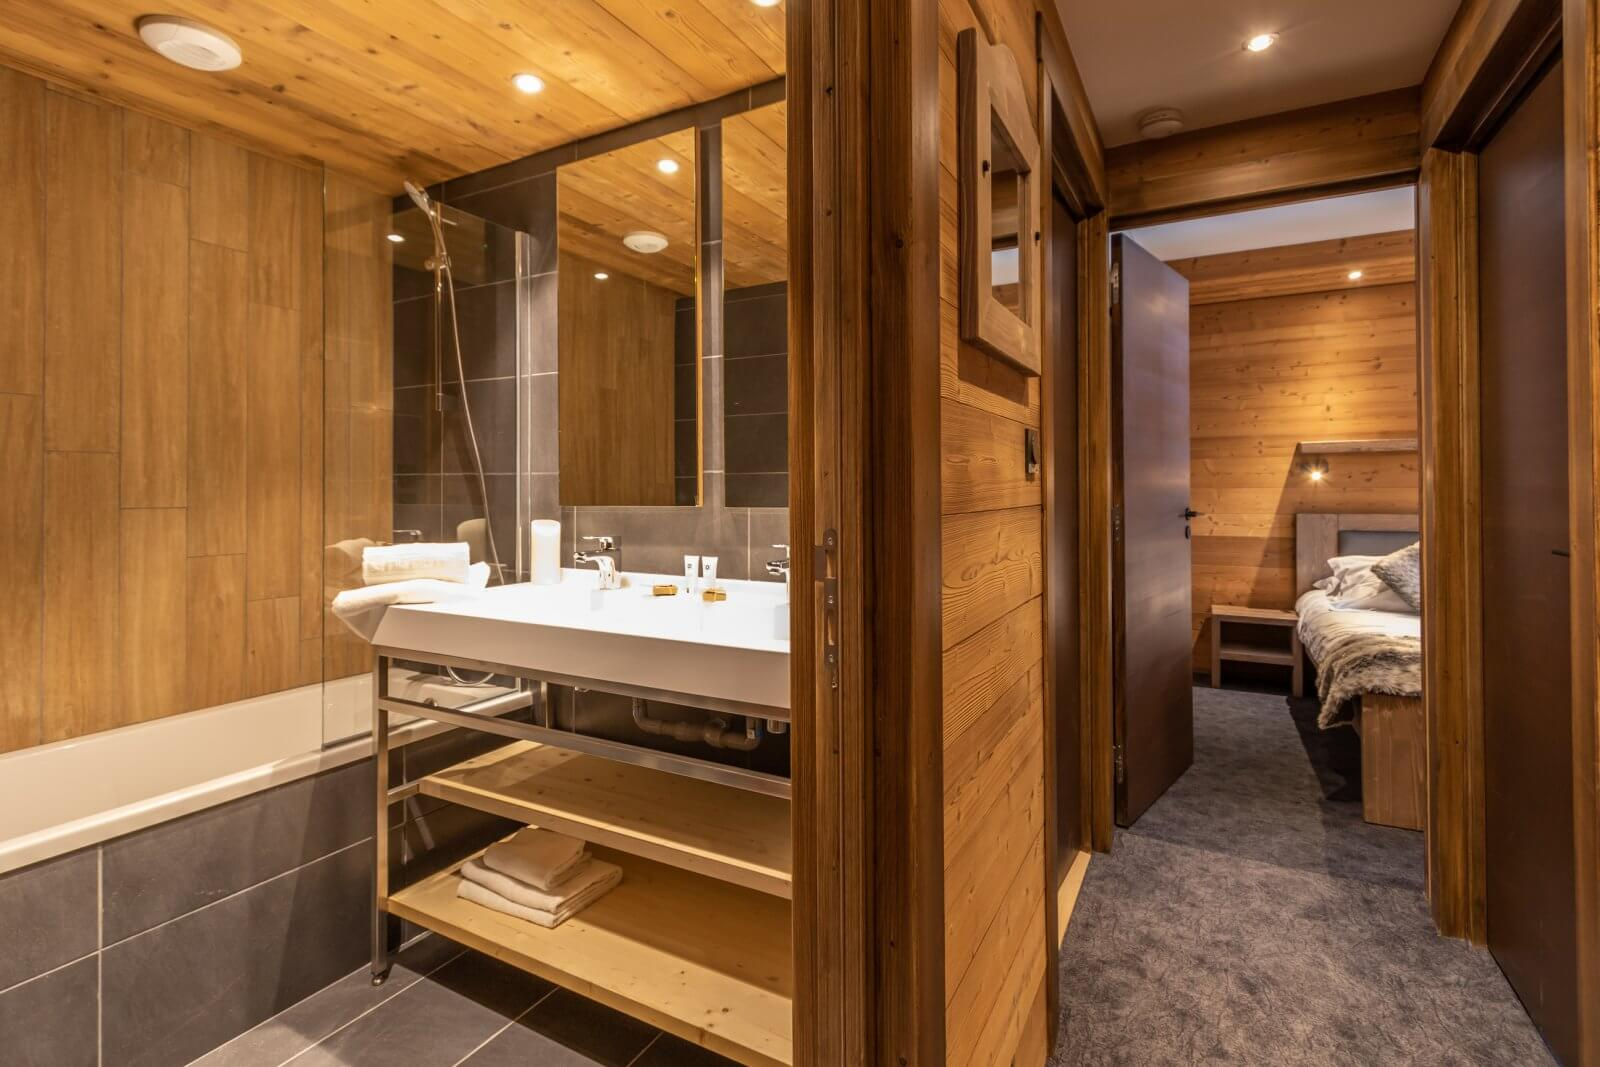 A bathroom with a bath in one of the apartments